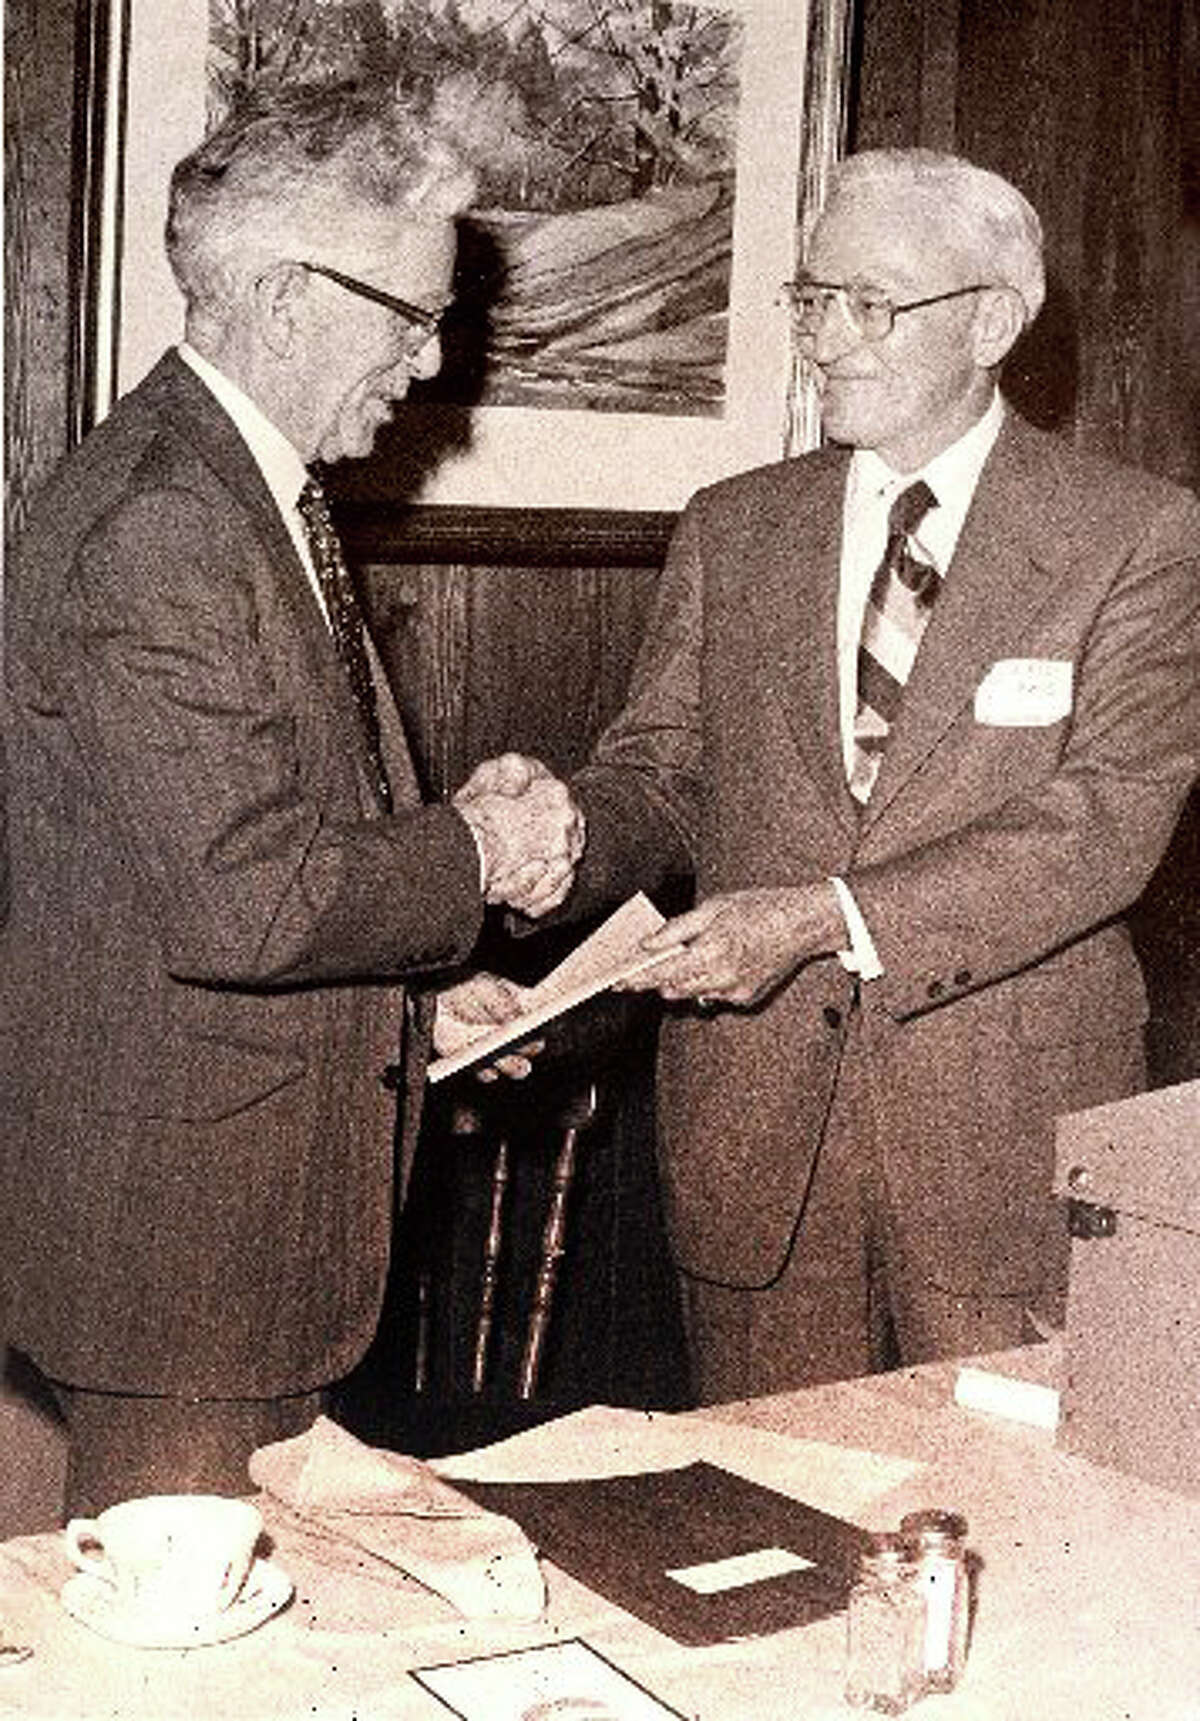 First Selectman John Sullivan receives the deed for open space given to the town by GE, from GE's Robert Lewis. The 1974 acquisition became known as the Cascades at the Lake Mohegan open space.